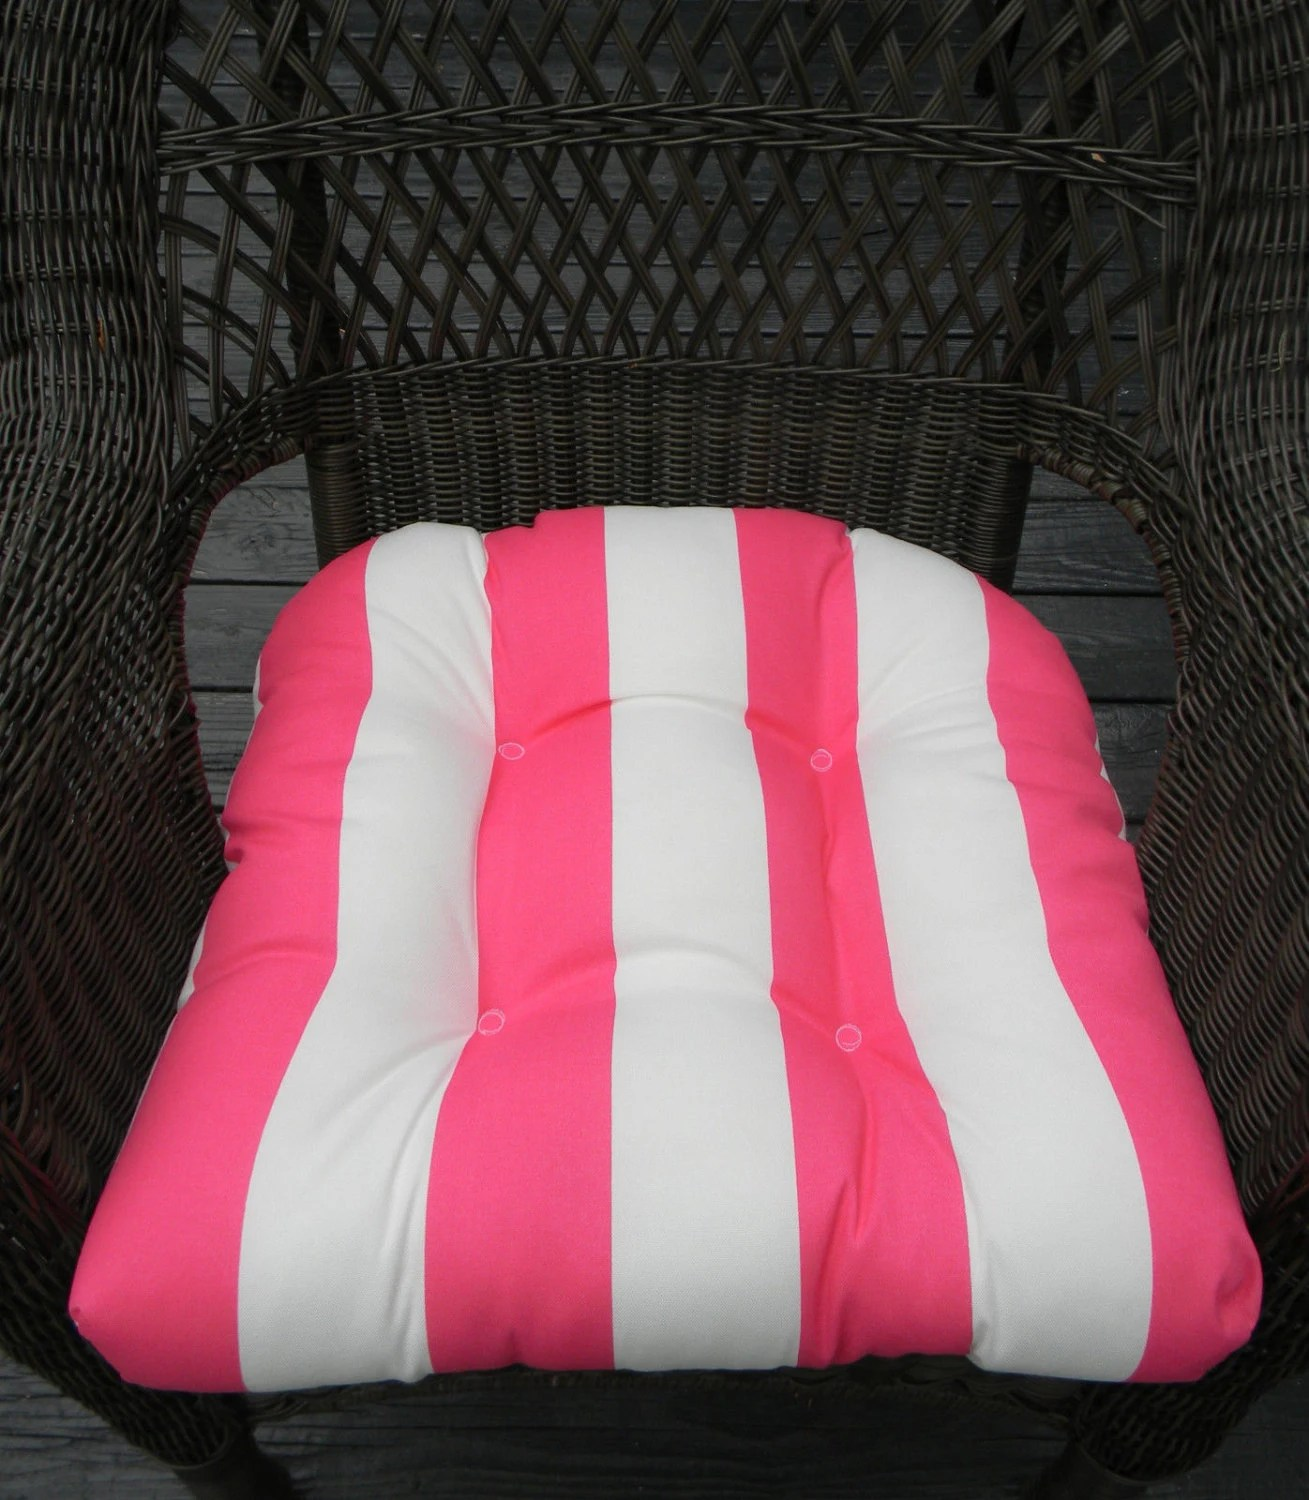 Pink Chair Cushions Indoor Outdoor Universal Wicker Chair Cushion Pink And